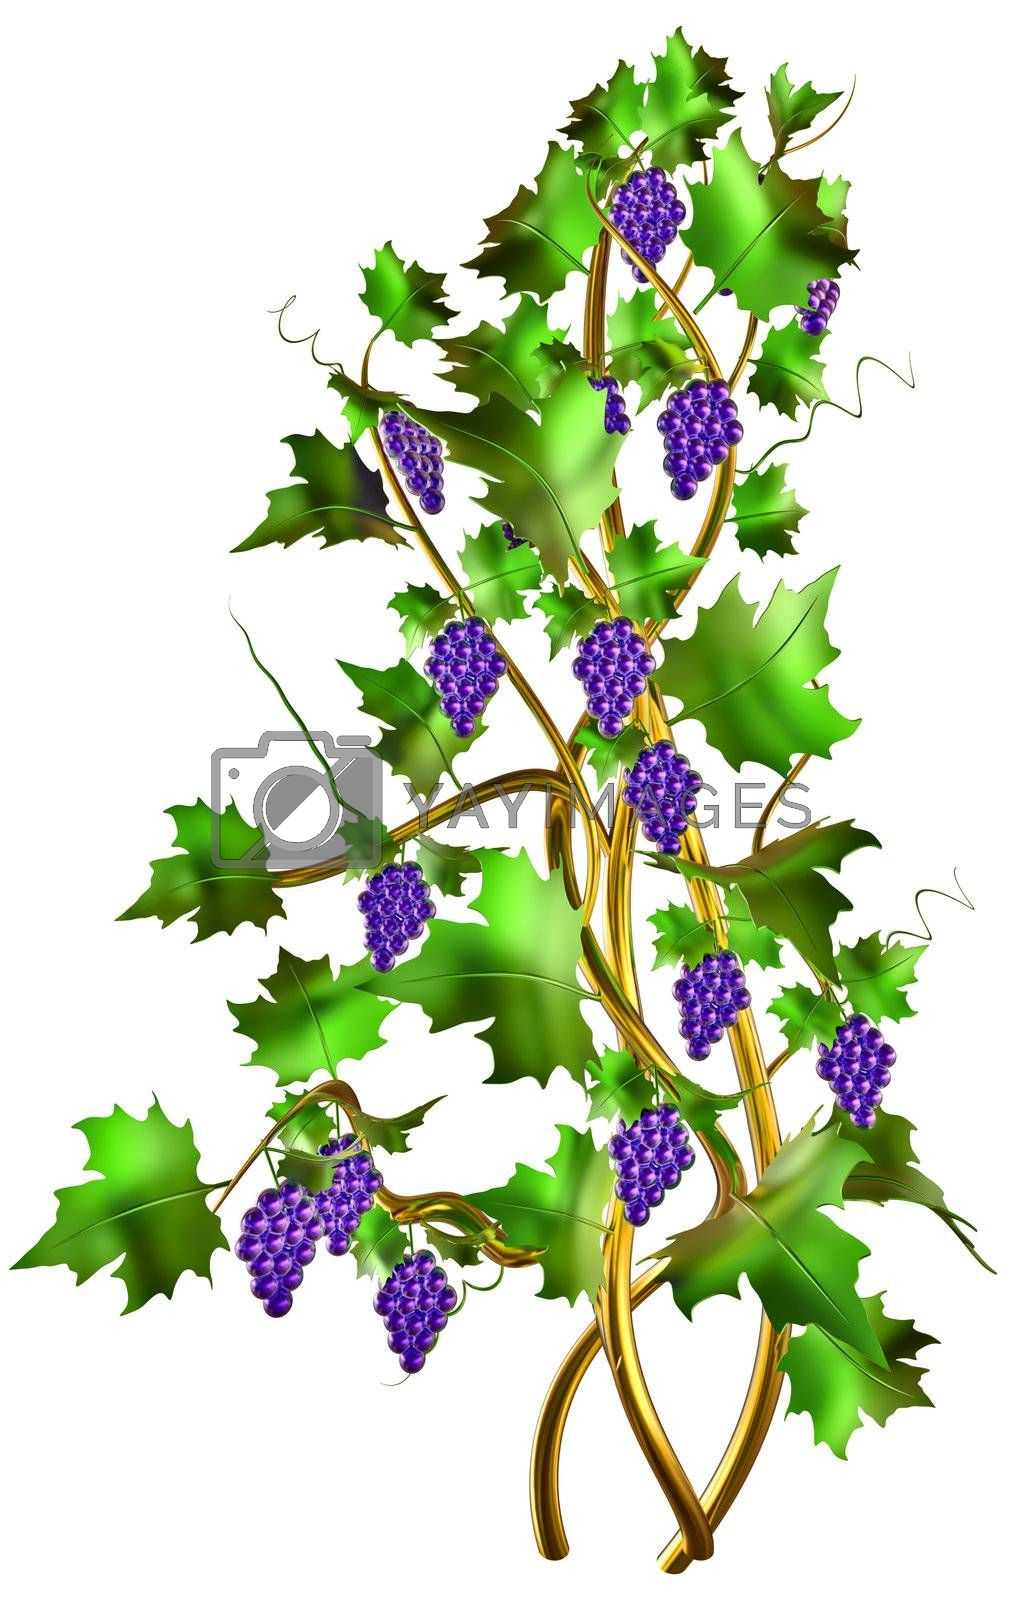 Cabernet shrub with fresh purple blue grapes and green leaves on the vine is one of the world's most widely recognized grapes varieties for winemaking.